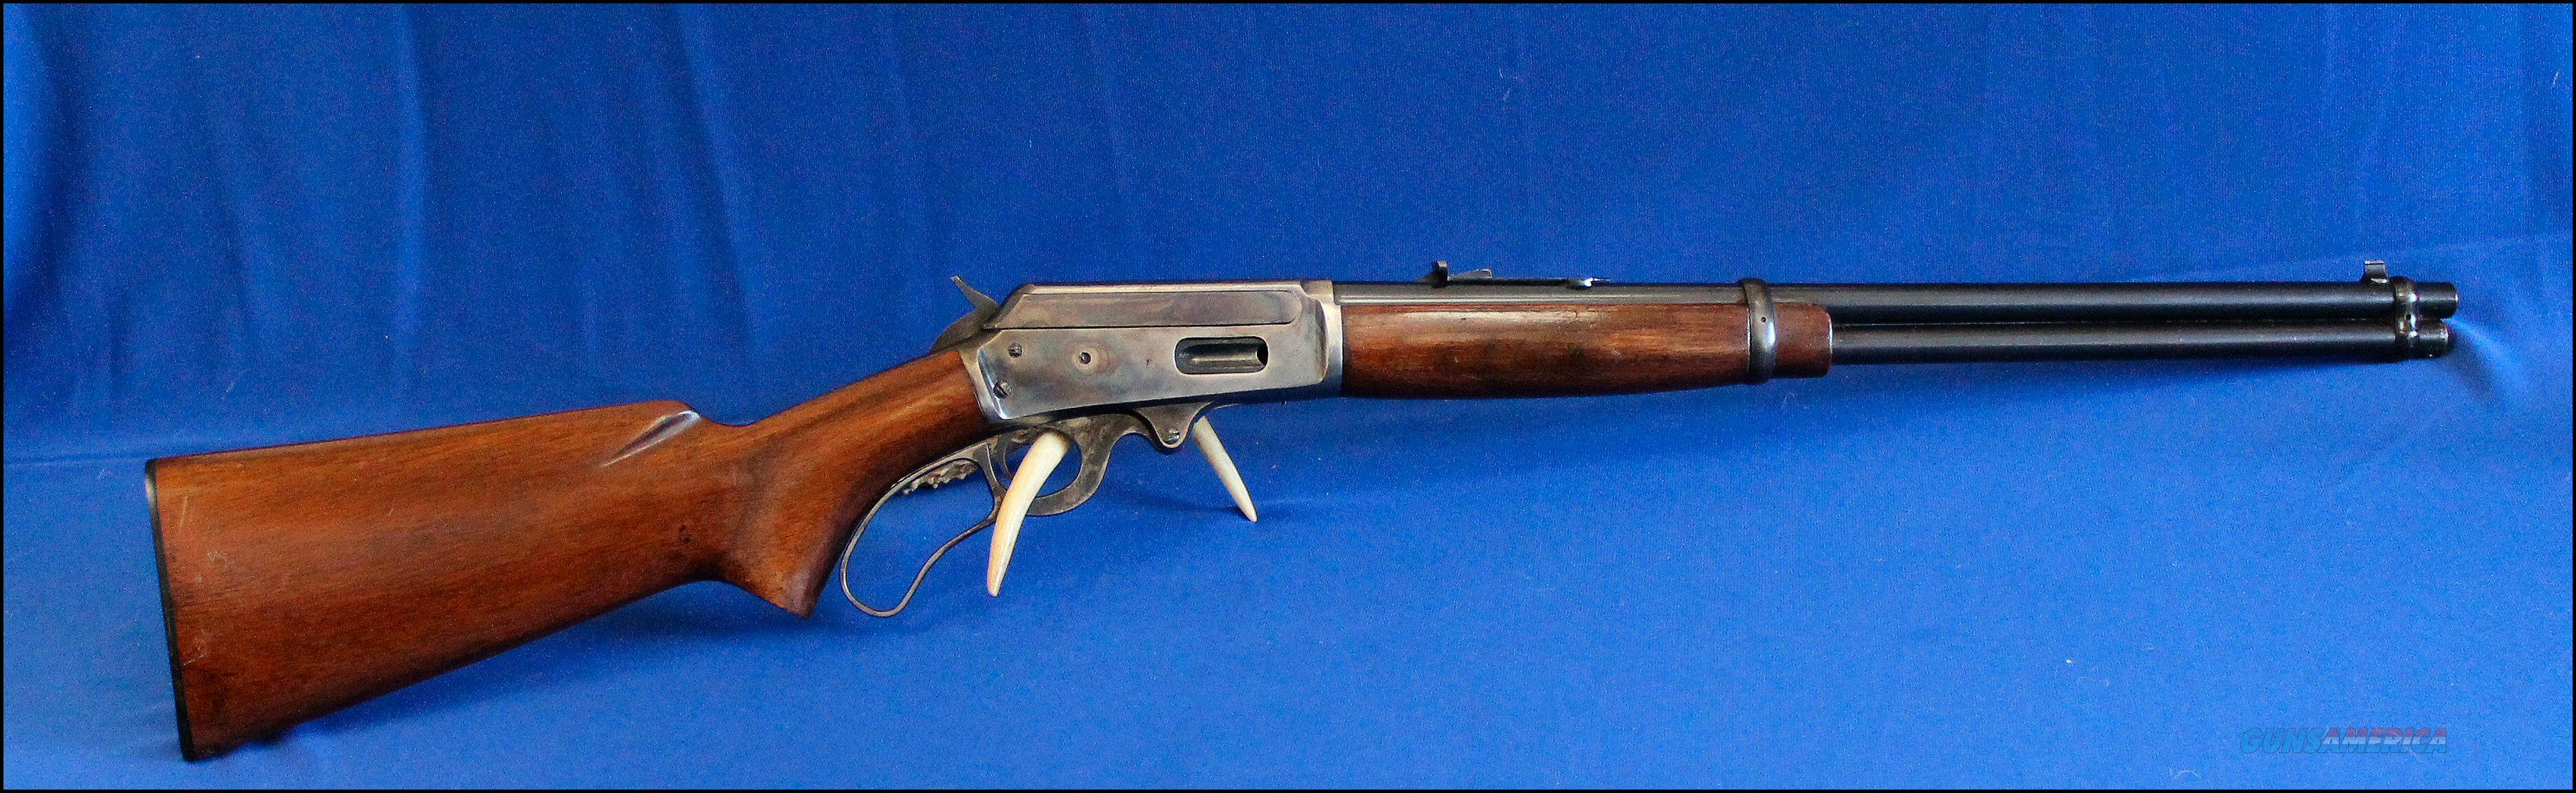 Marlin Model 1936 1st Variation 30-30 Brilliant Case Colors!   Guns > Rifles > Marlin Rifles > Modern > Lever Action